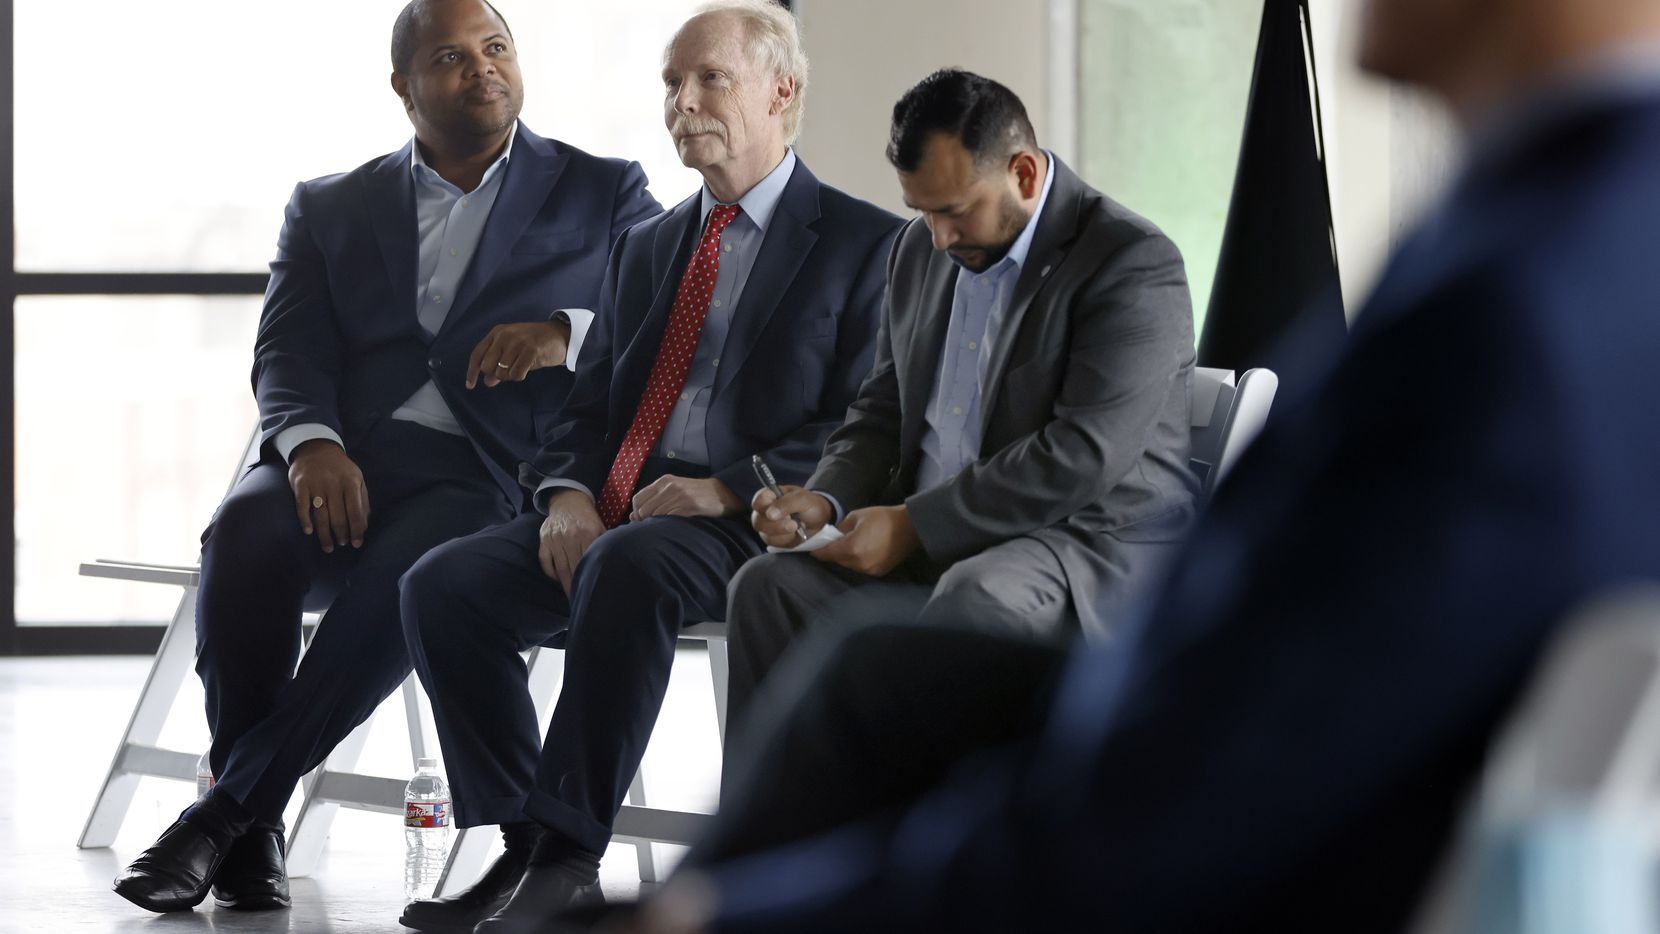 Dallas City Councilman Paul Ridley, center, sits with Mayor Eric Johnson, left, and City Councilman Jesse Moreno, right, during a ceremonial groundbreaking of Harwood Park in September 2021 in downtown Dallas.  (Tom Fox/The Dallas Morning News)